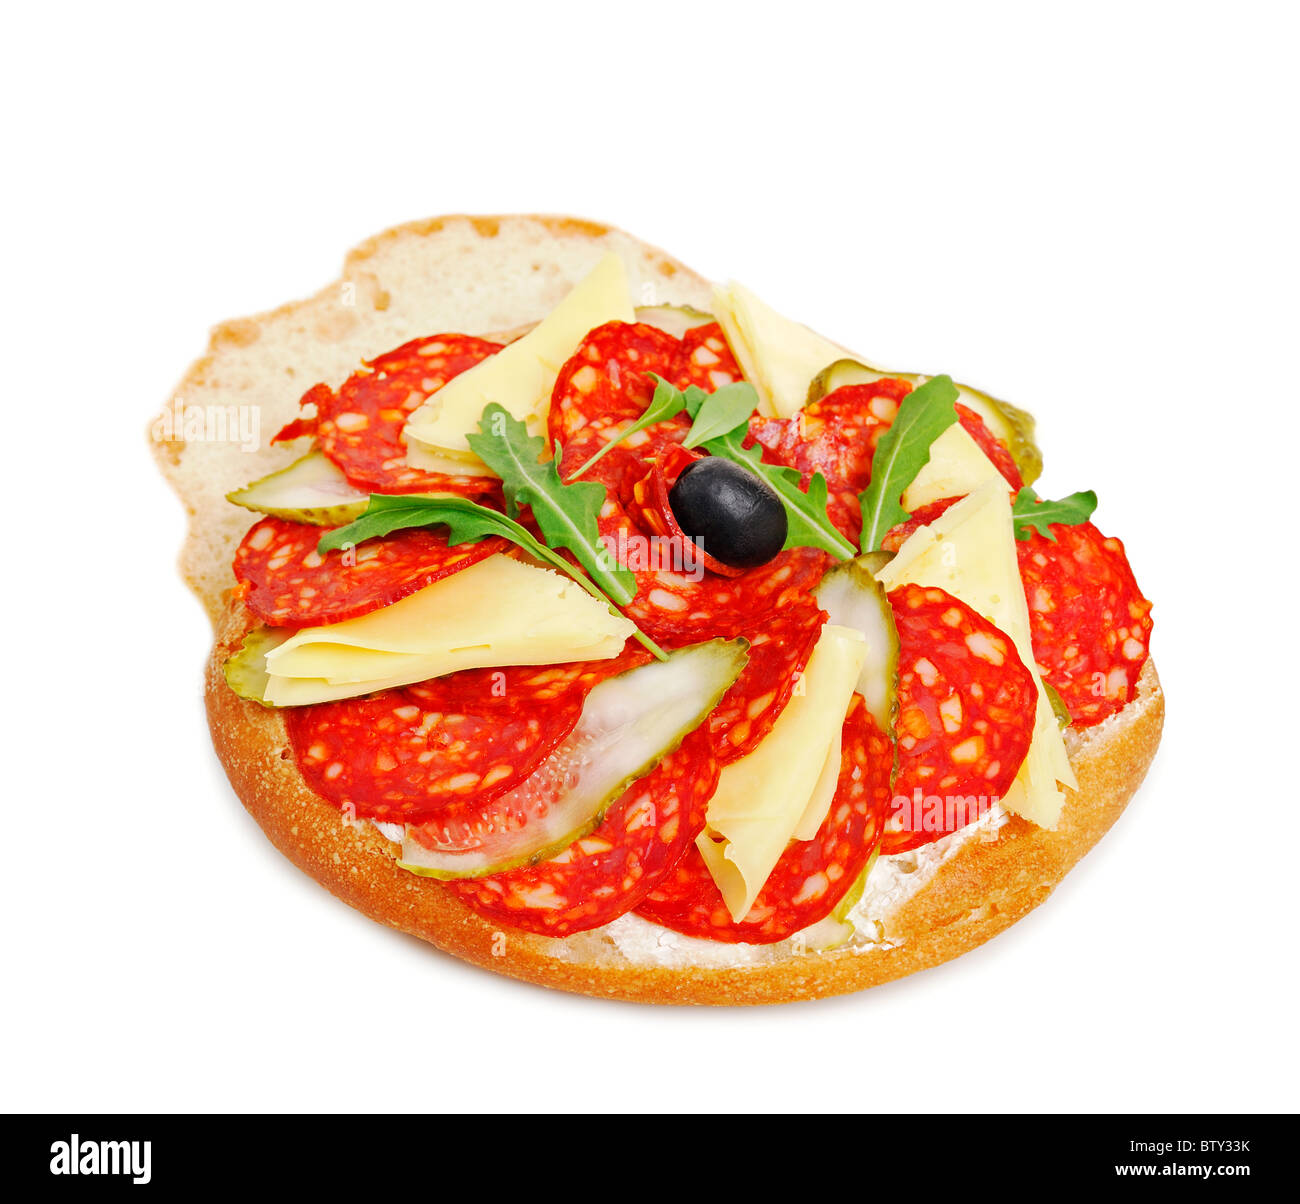 Salami Sandwich with Cheese and Garnish, Close Up. - Stock Image